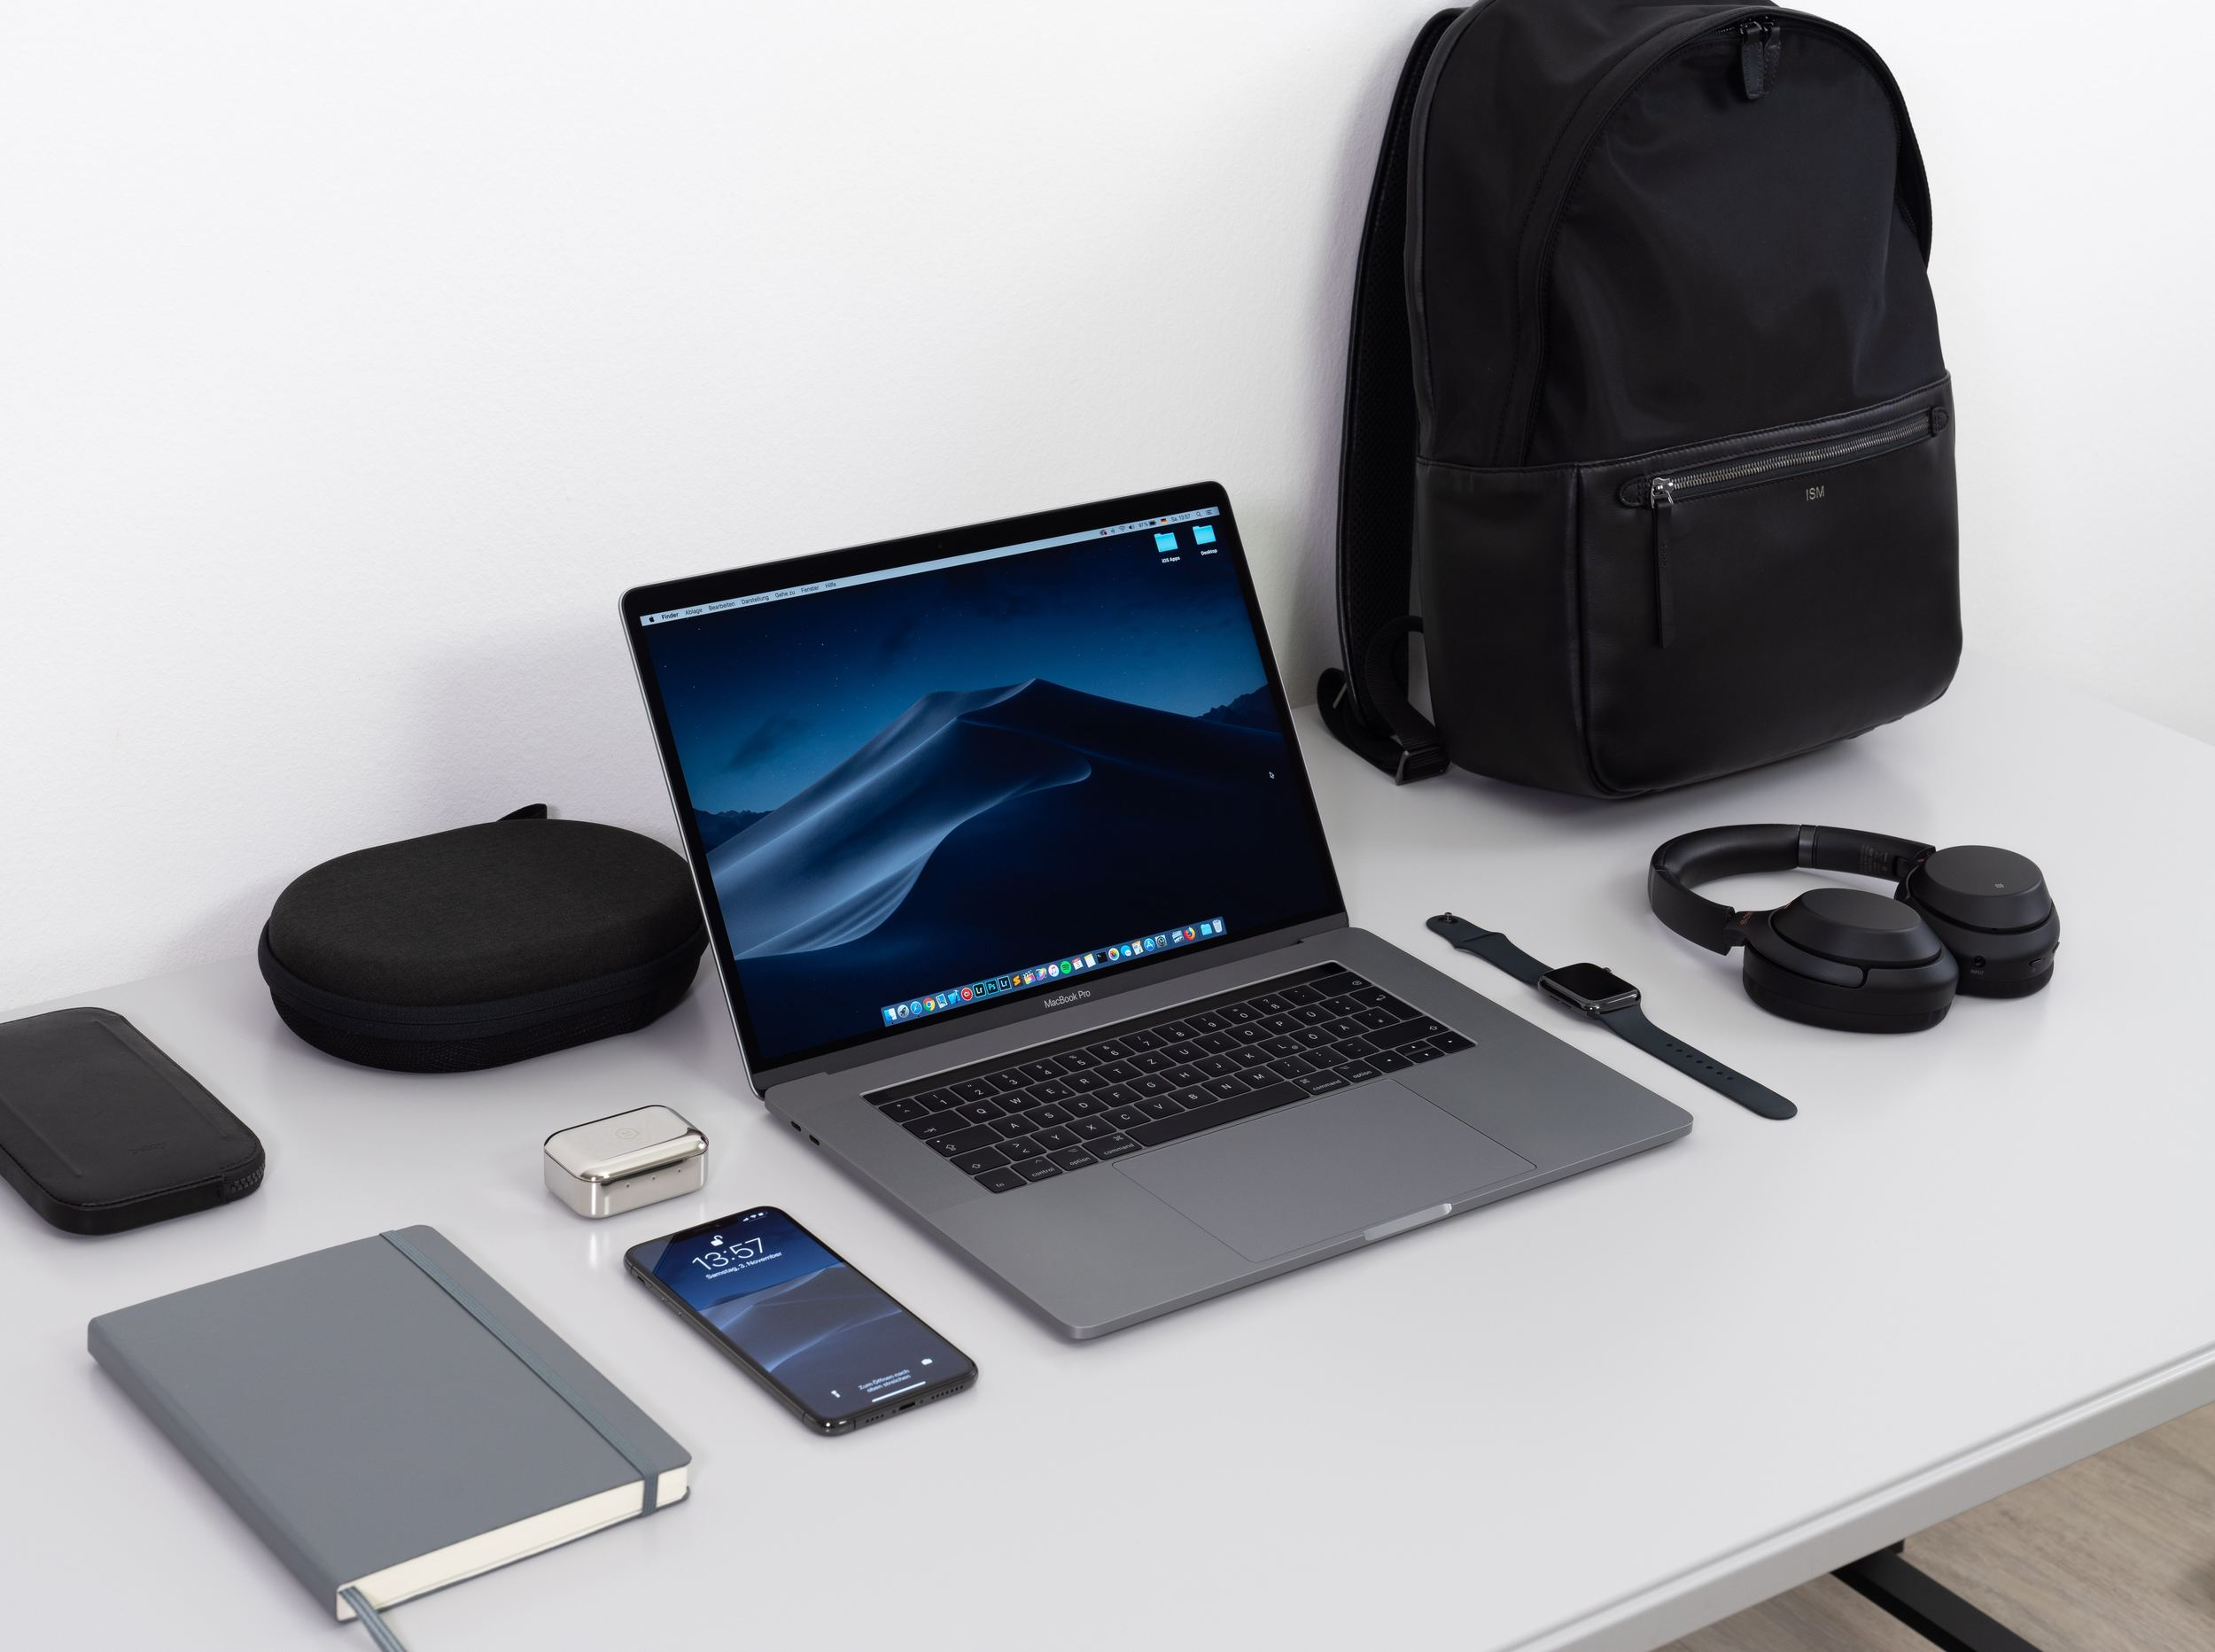 10 Backpack with a Laptop Compartment Suitable for Traveling